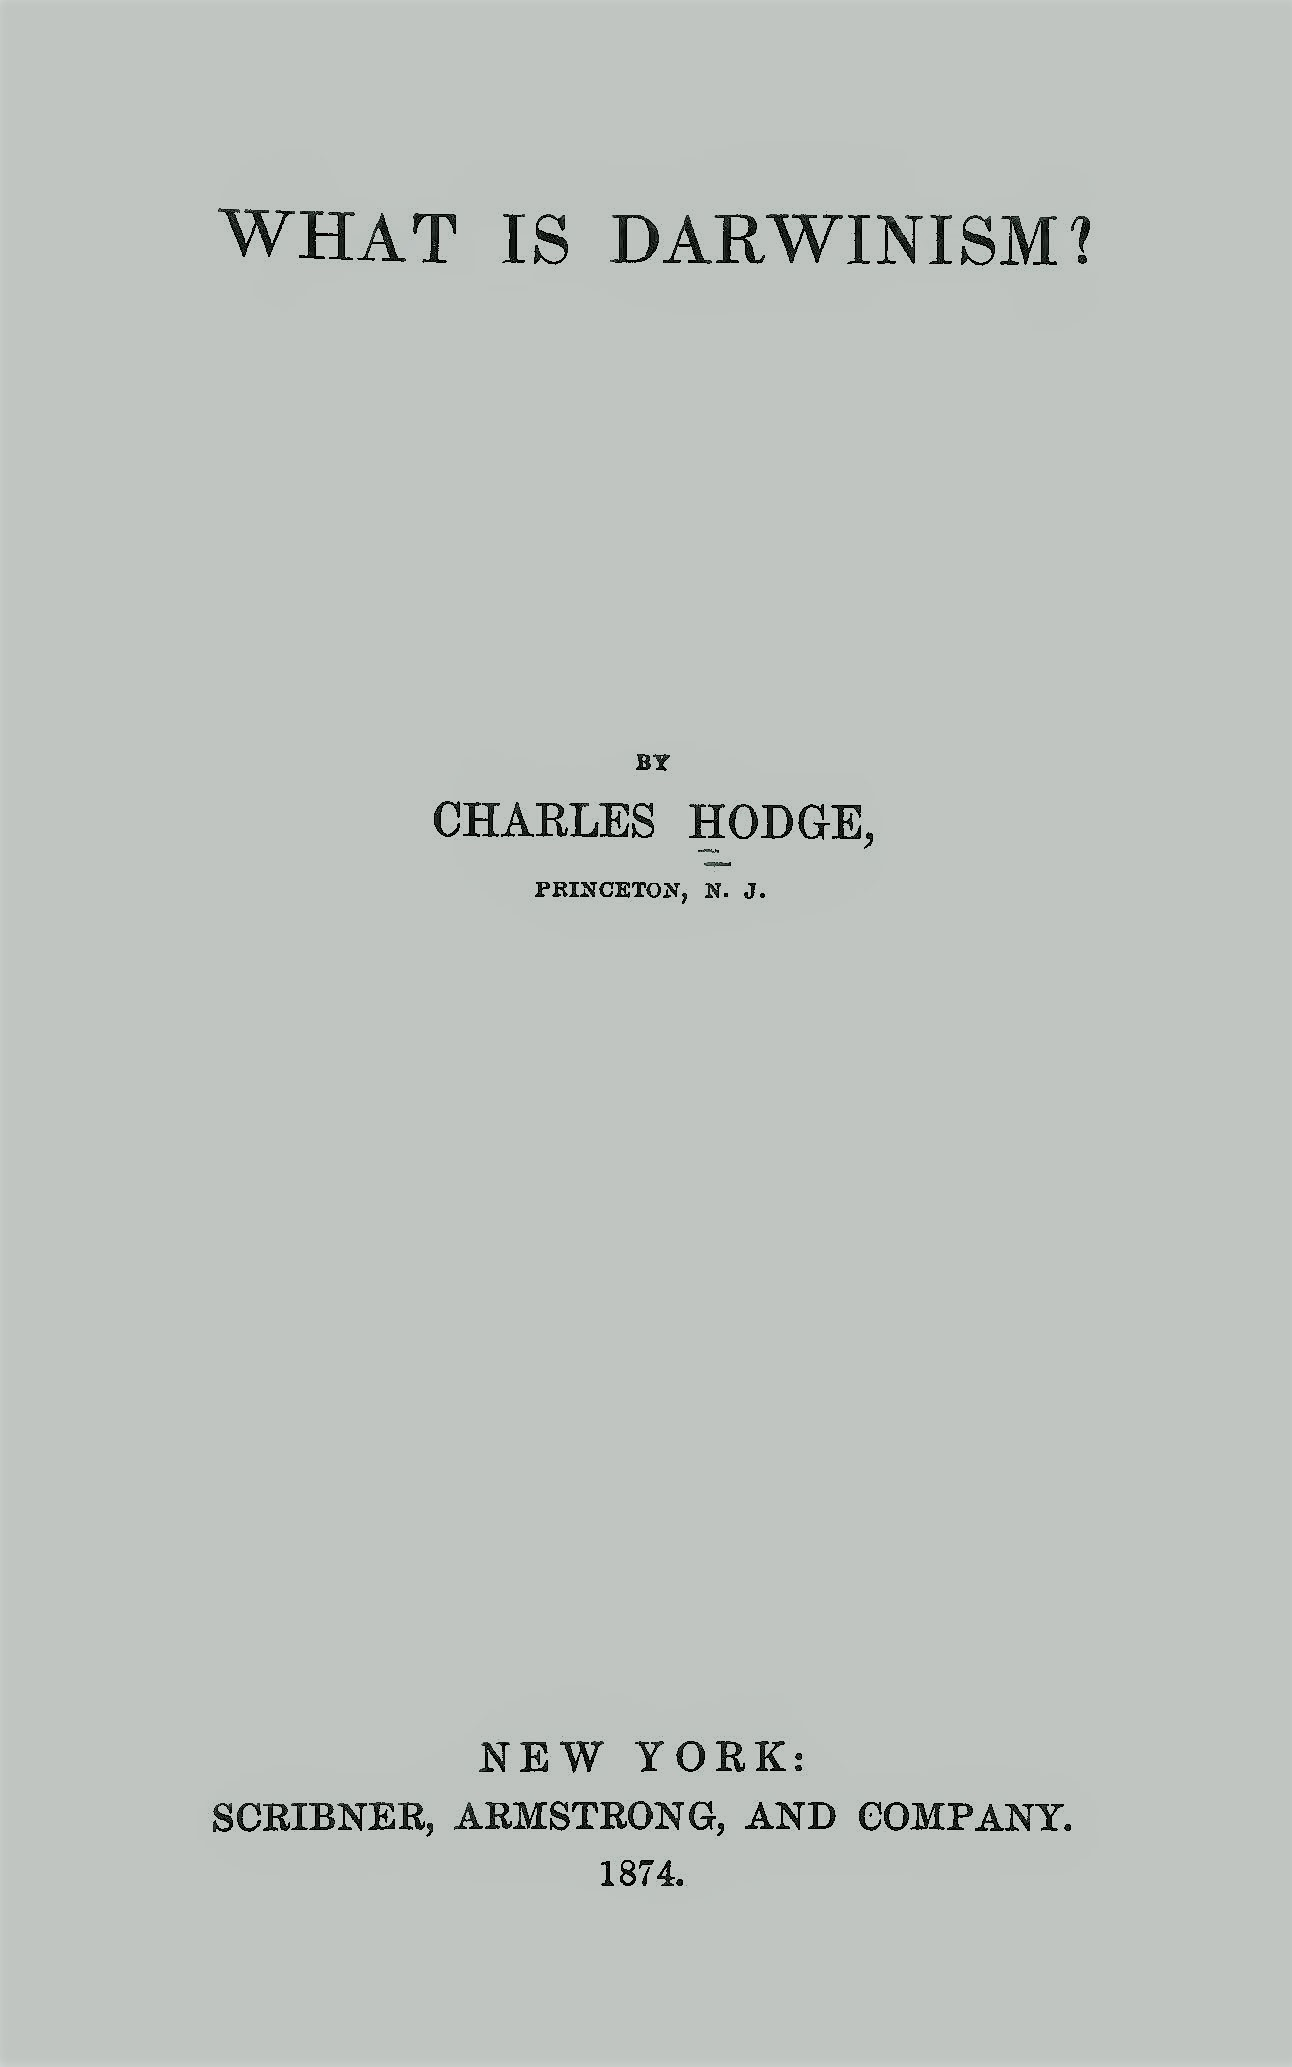 Hodge, Charles, What is Darwinism Title Page.jpg